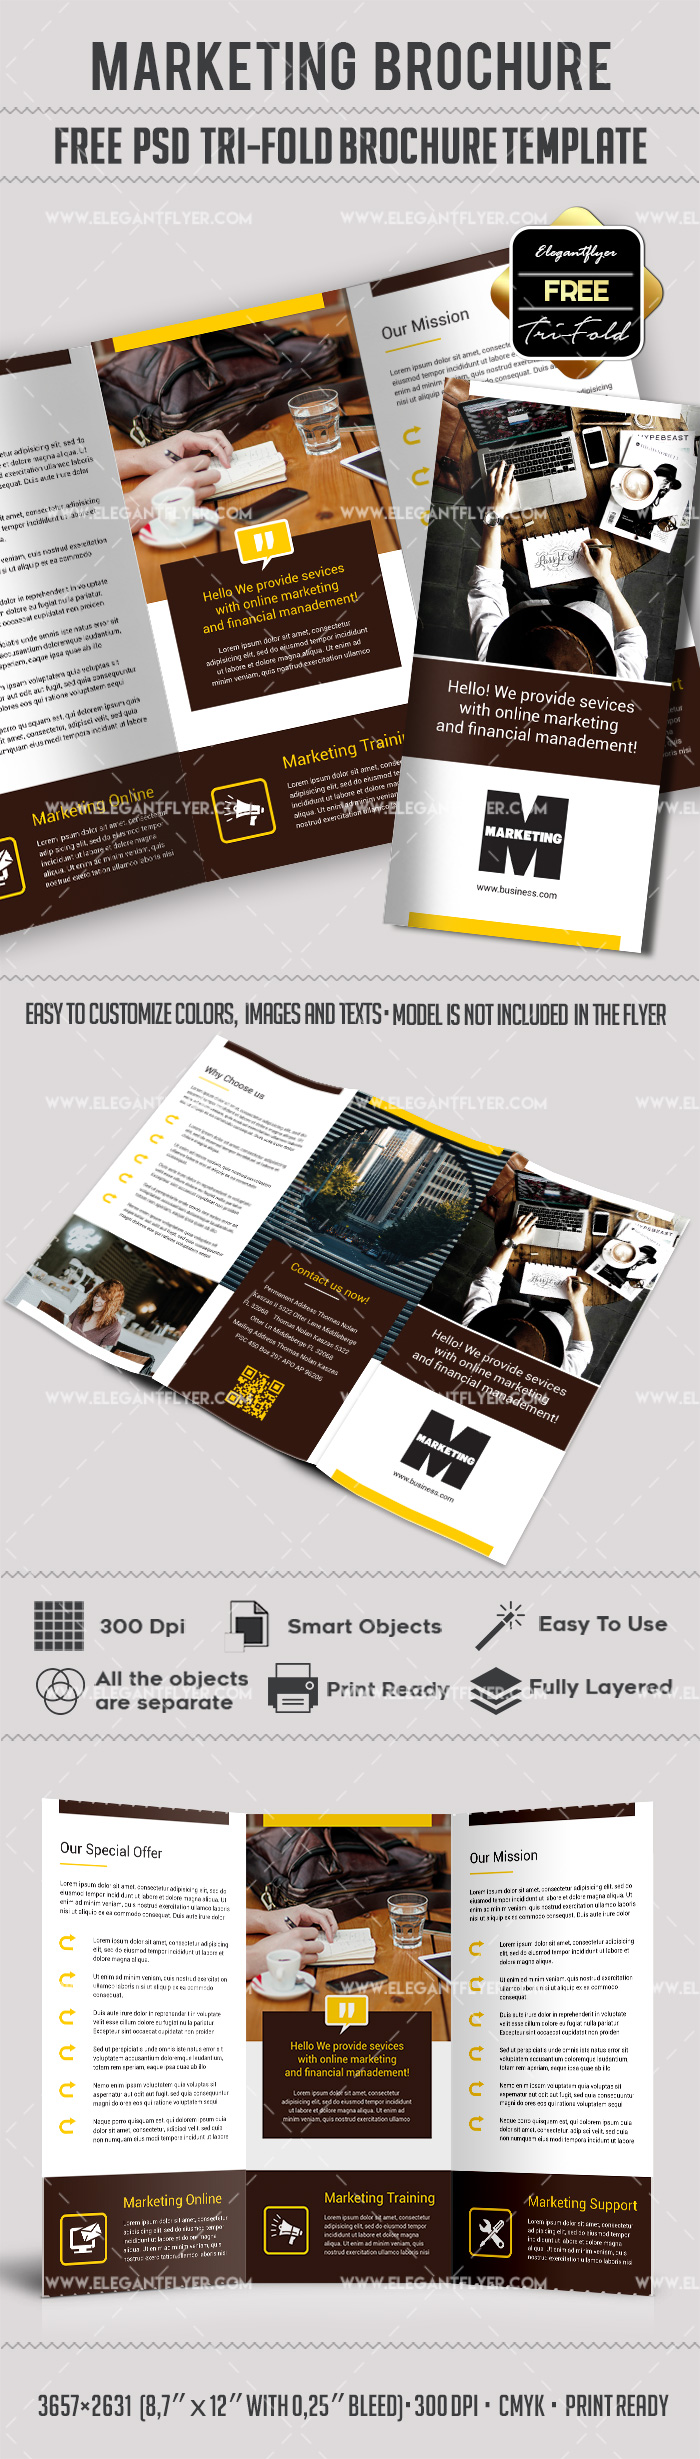 free tri fold brochure templates - marketing free tri fold psd brochure template by